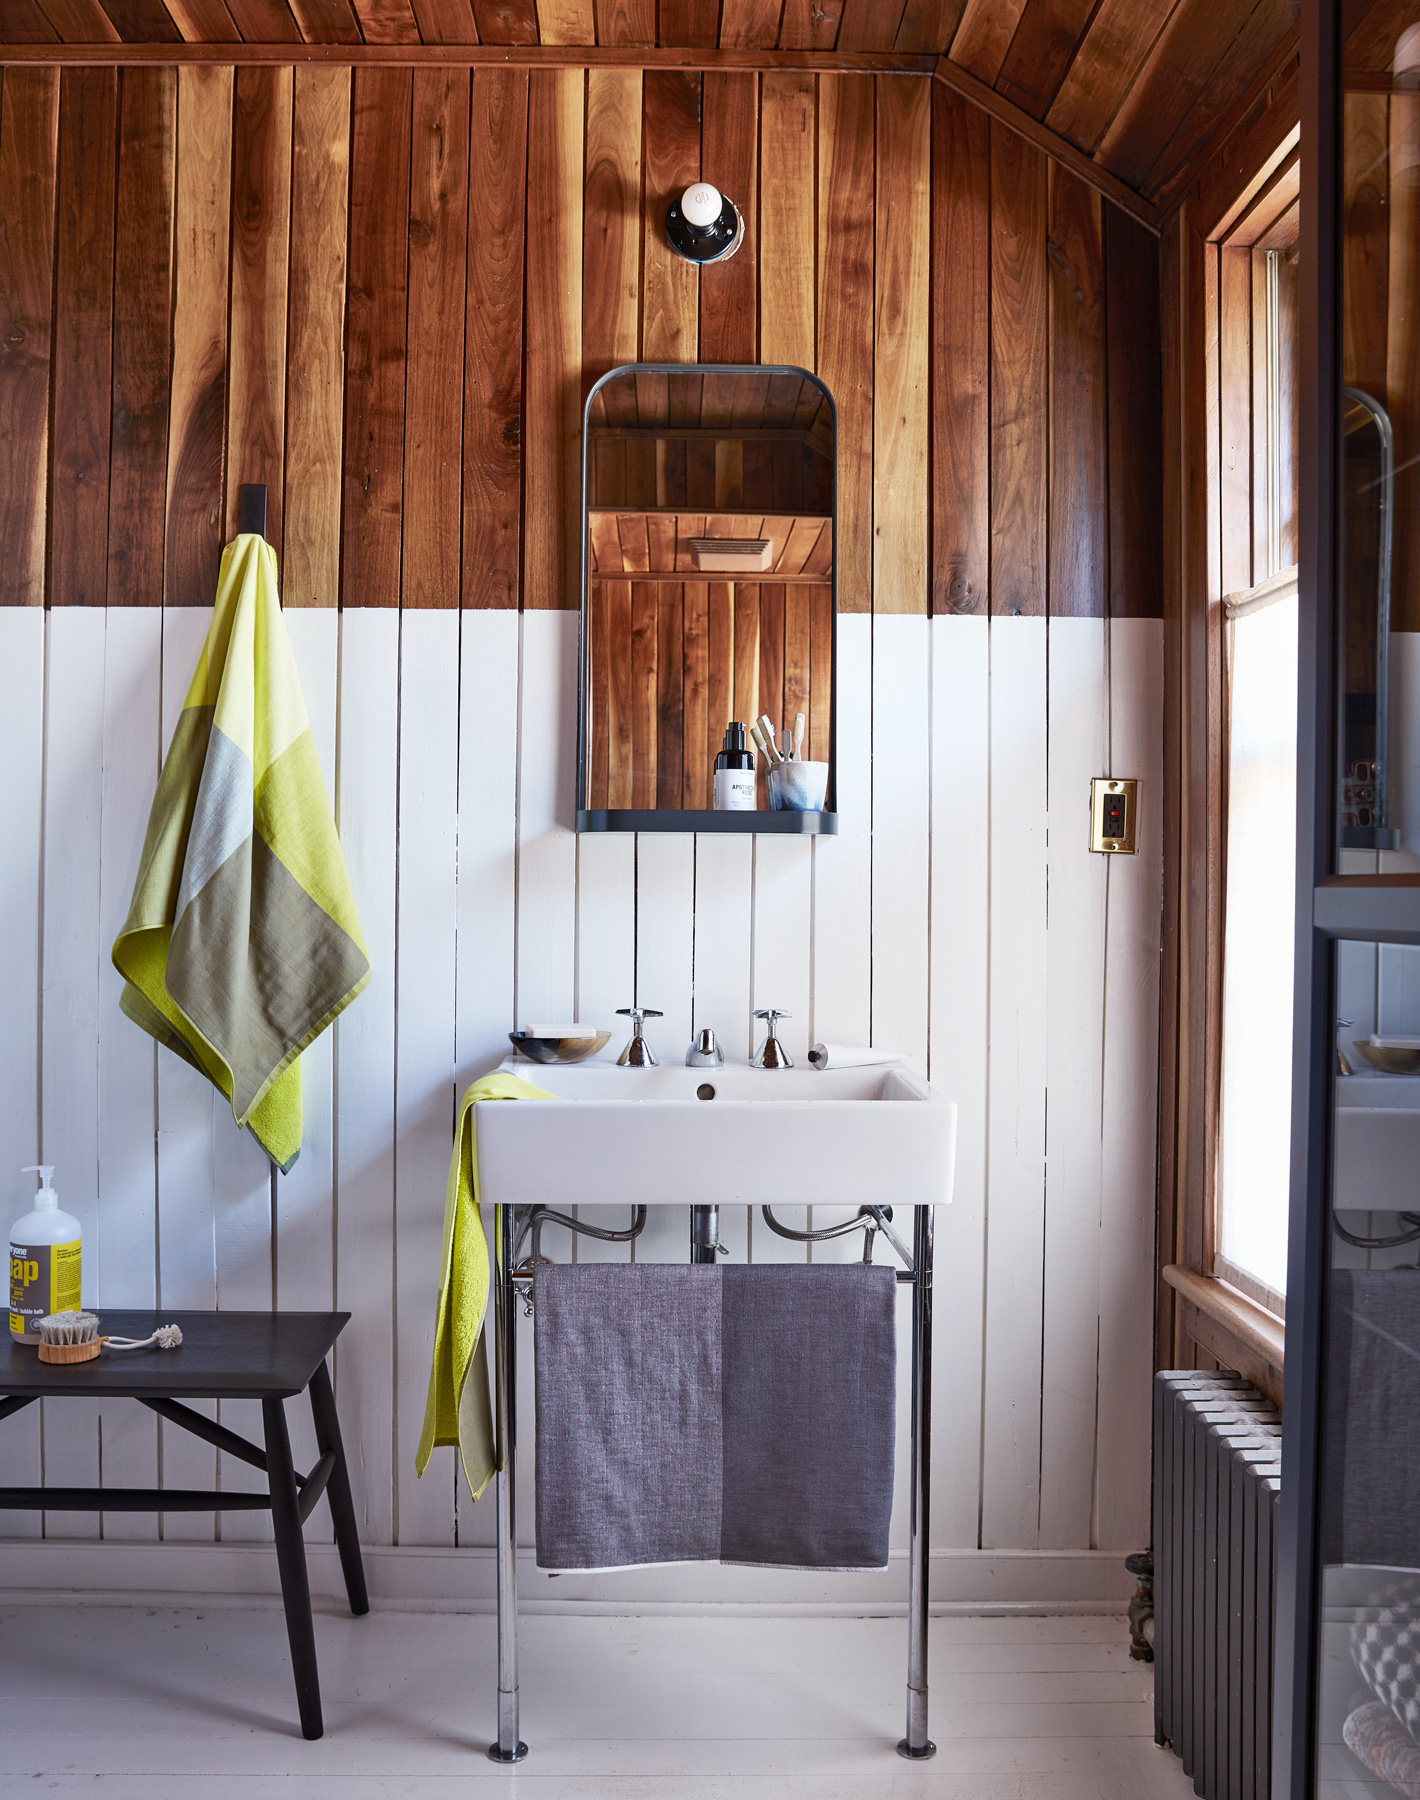 bathroom with wooden paneling bottom-half painted white